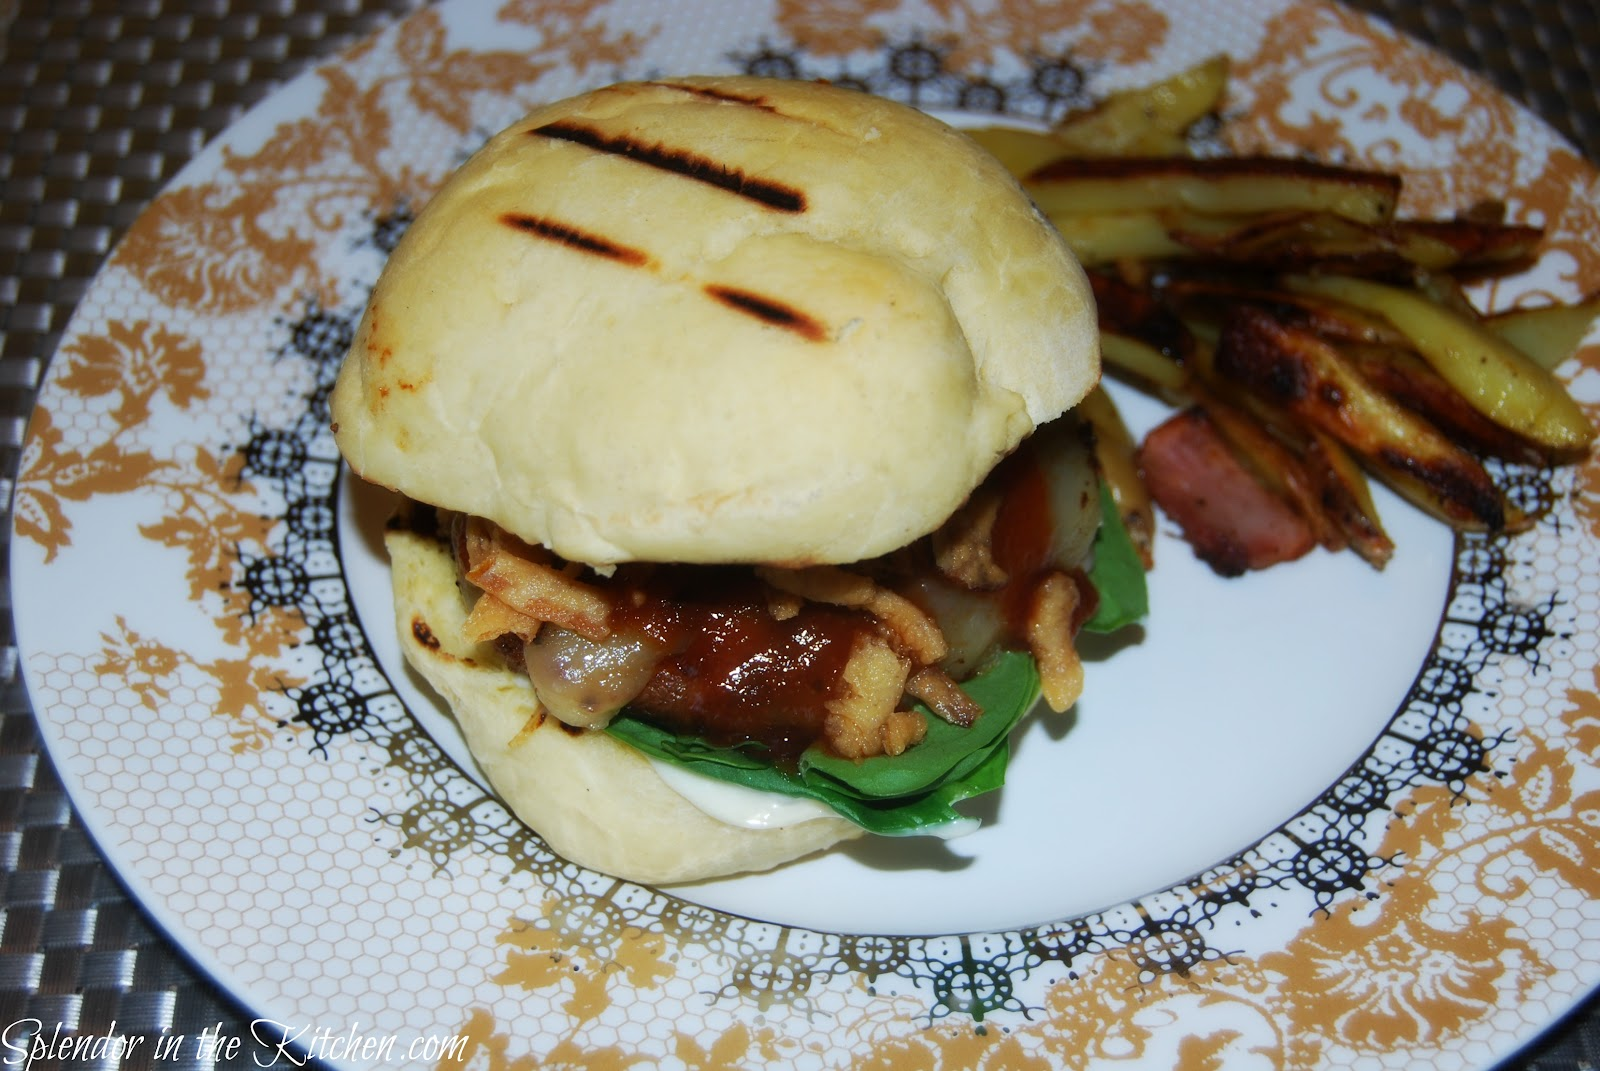 Splendor in the Kitchen: Bbq Portabella Mushroom Burger